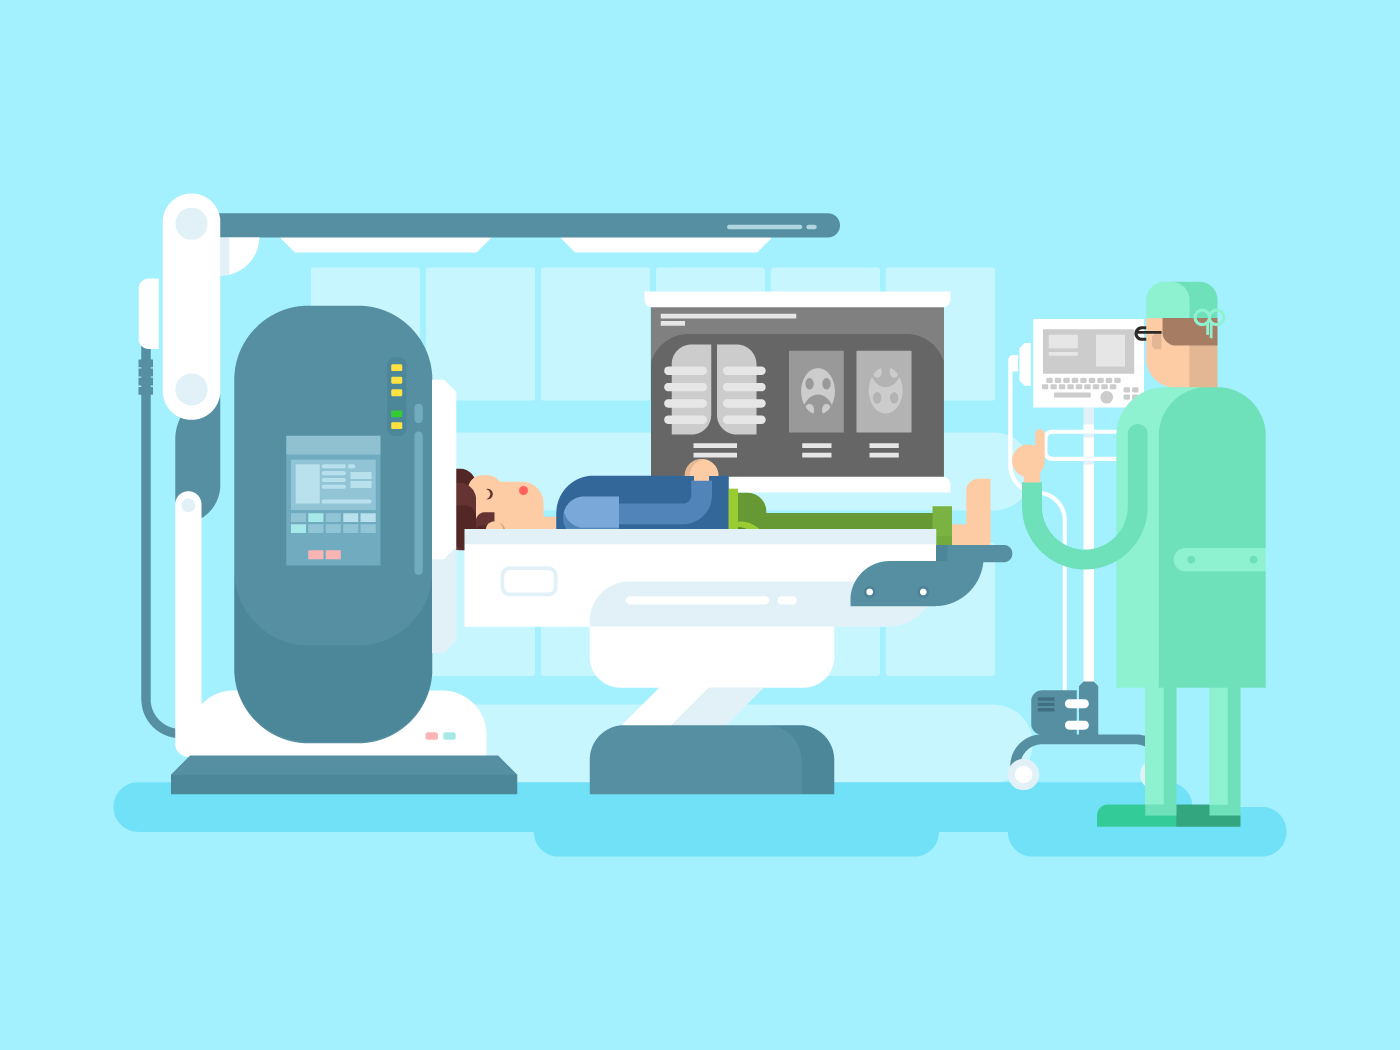 Cabinet with an MRI device flat vector illustration